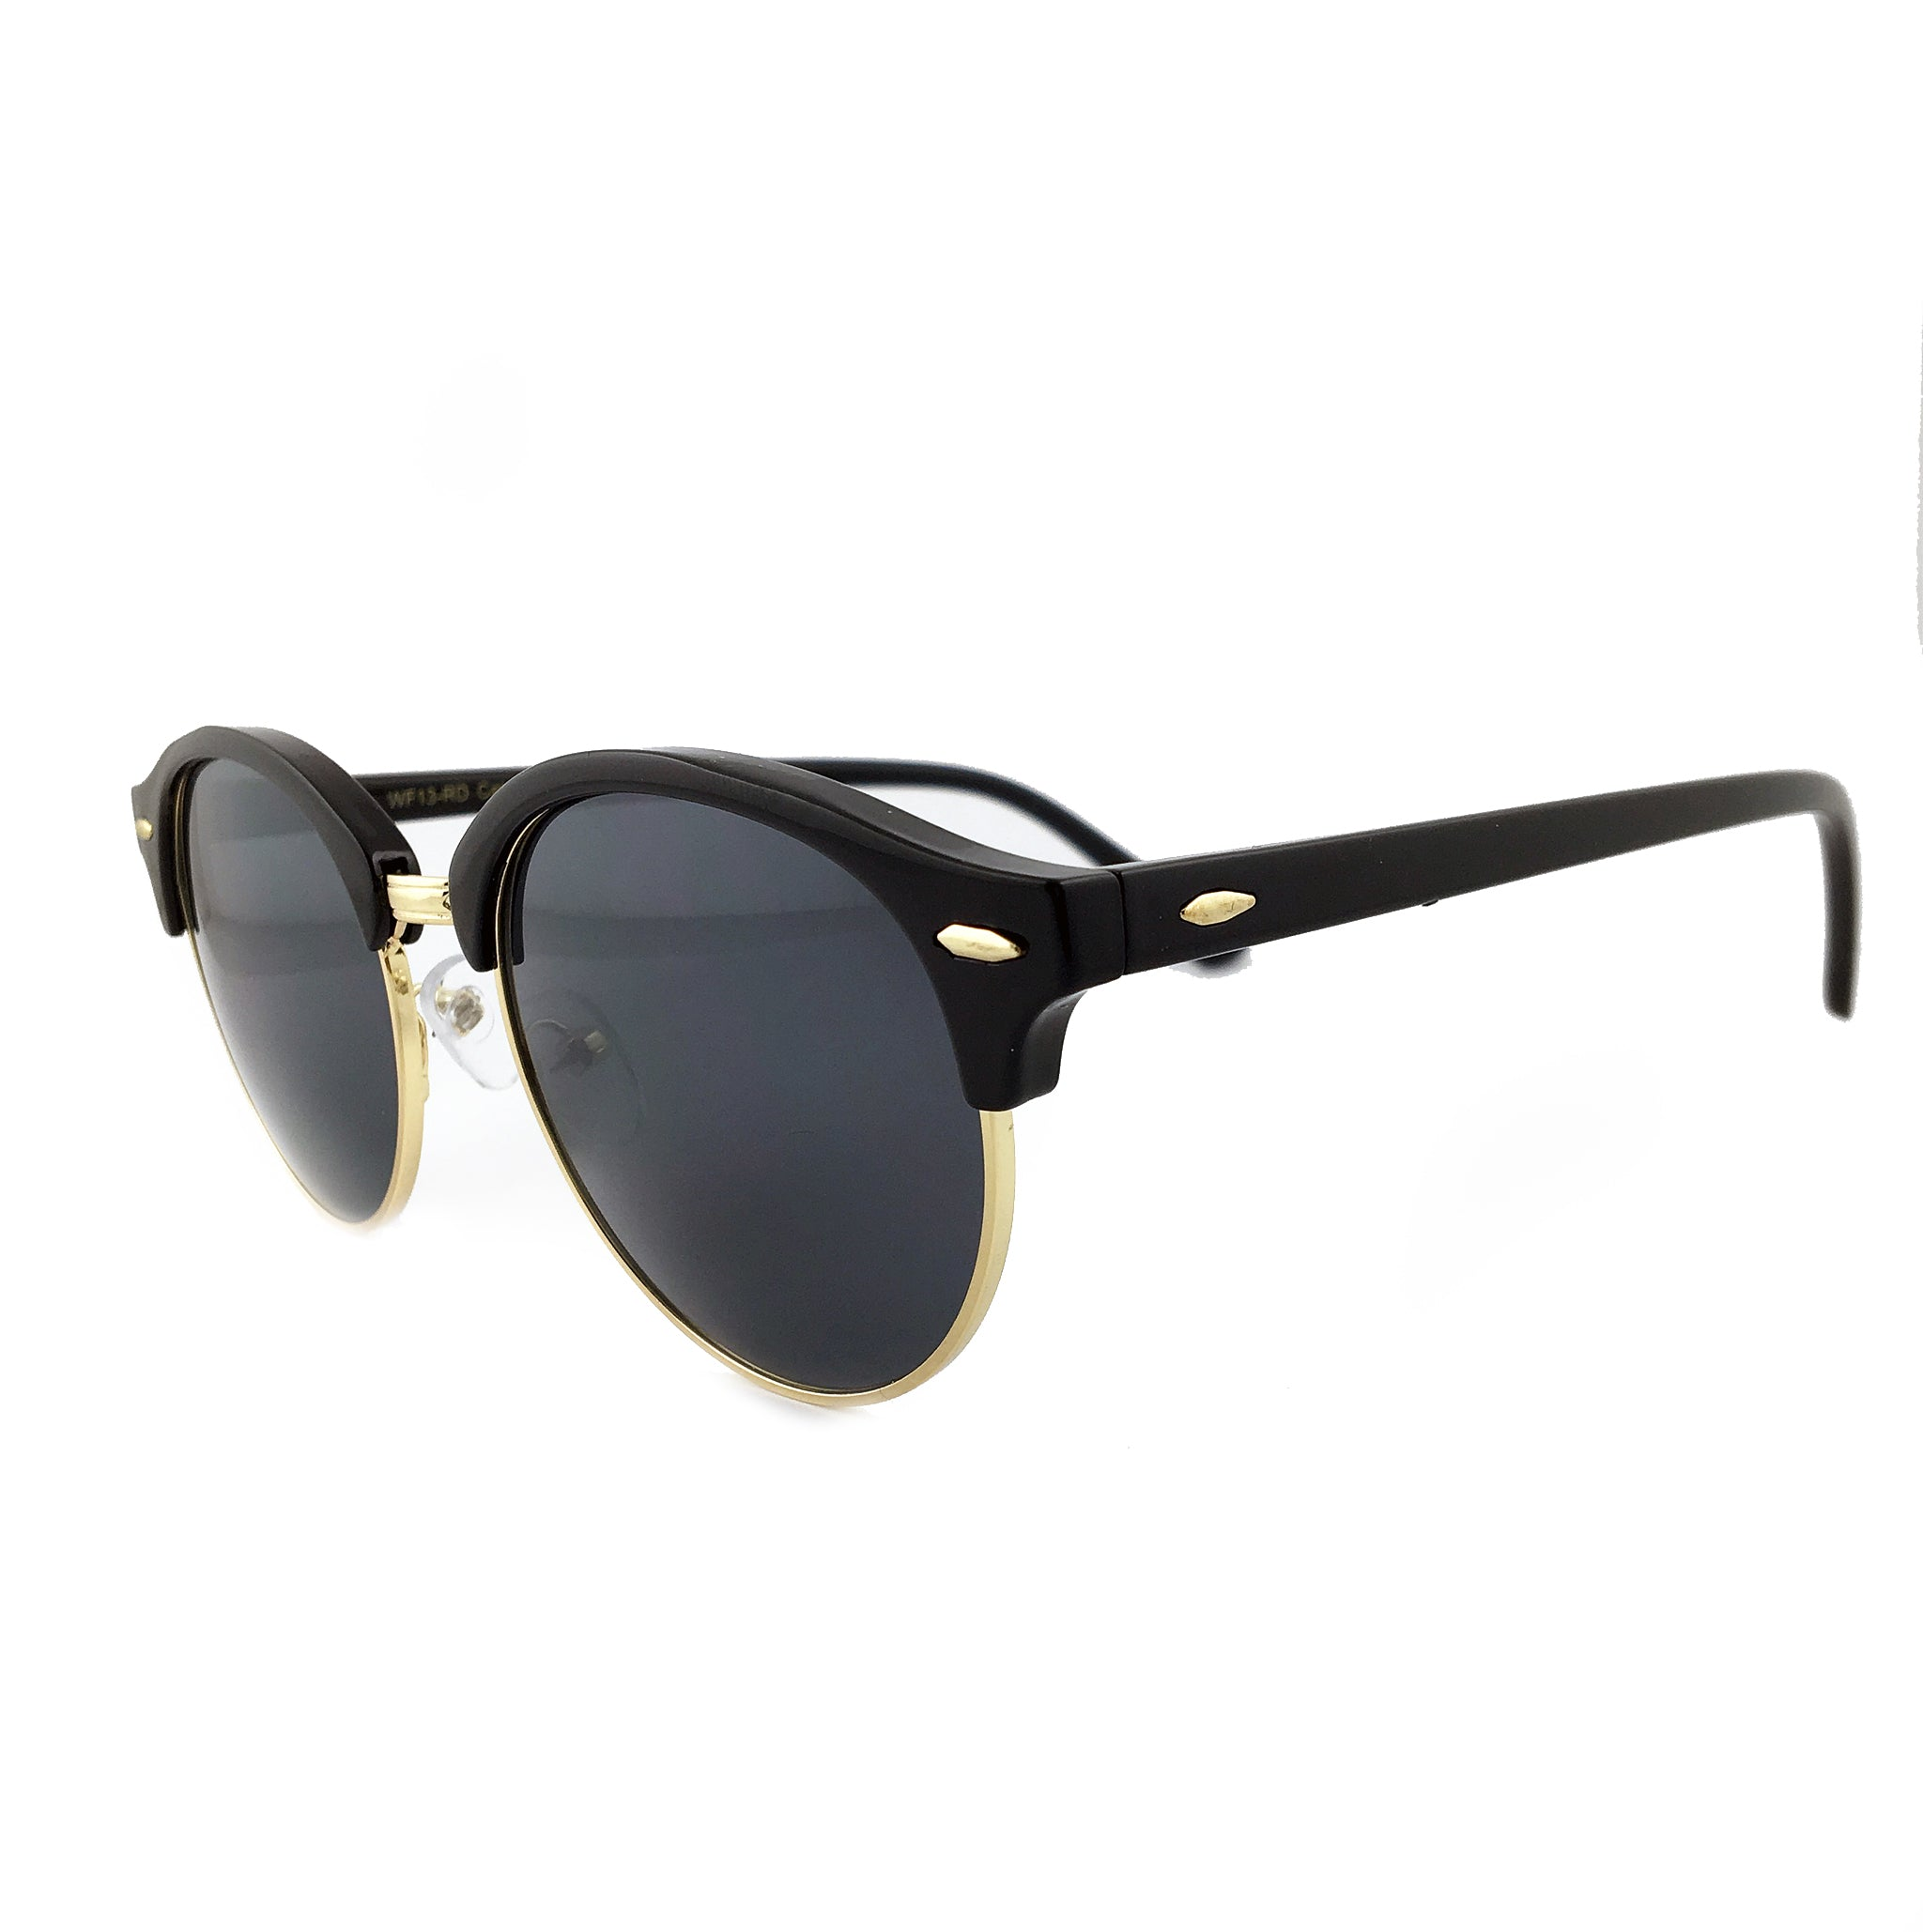 Classic round sunglasses with black tinted lens and gold frame | The Perfect Gentleman